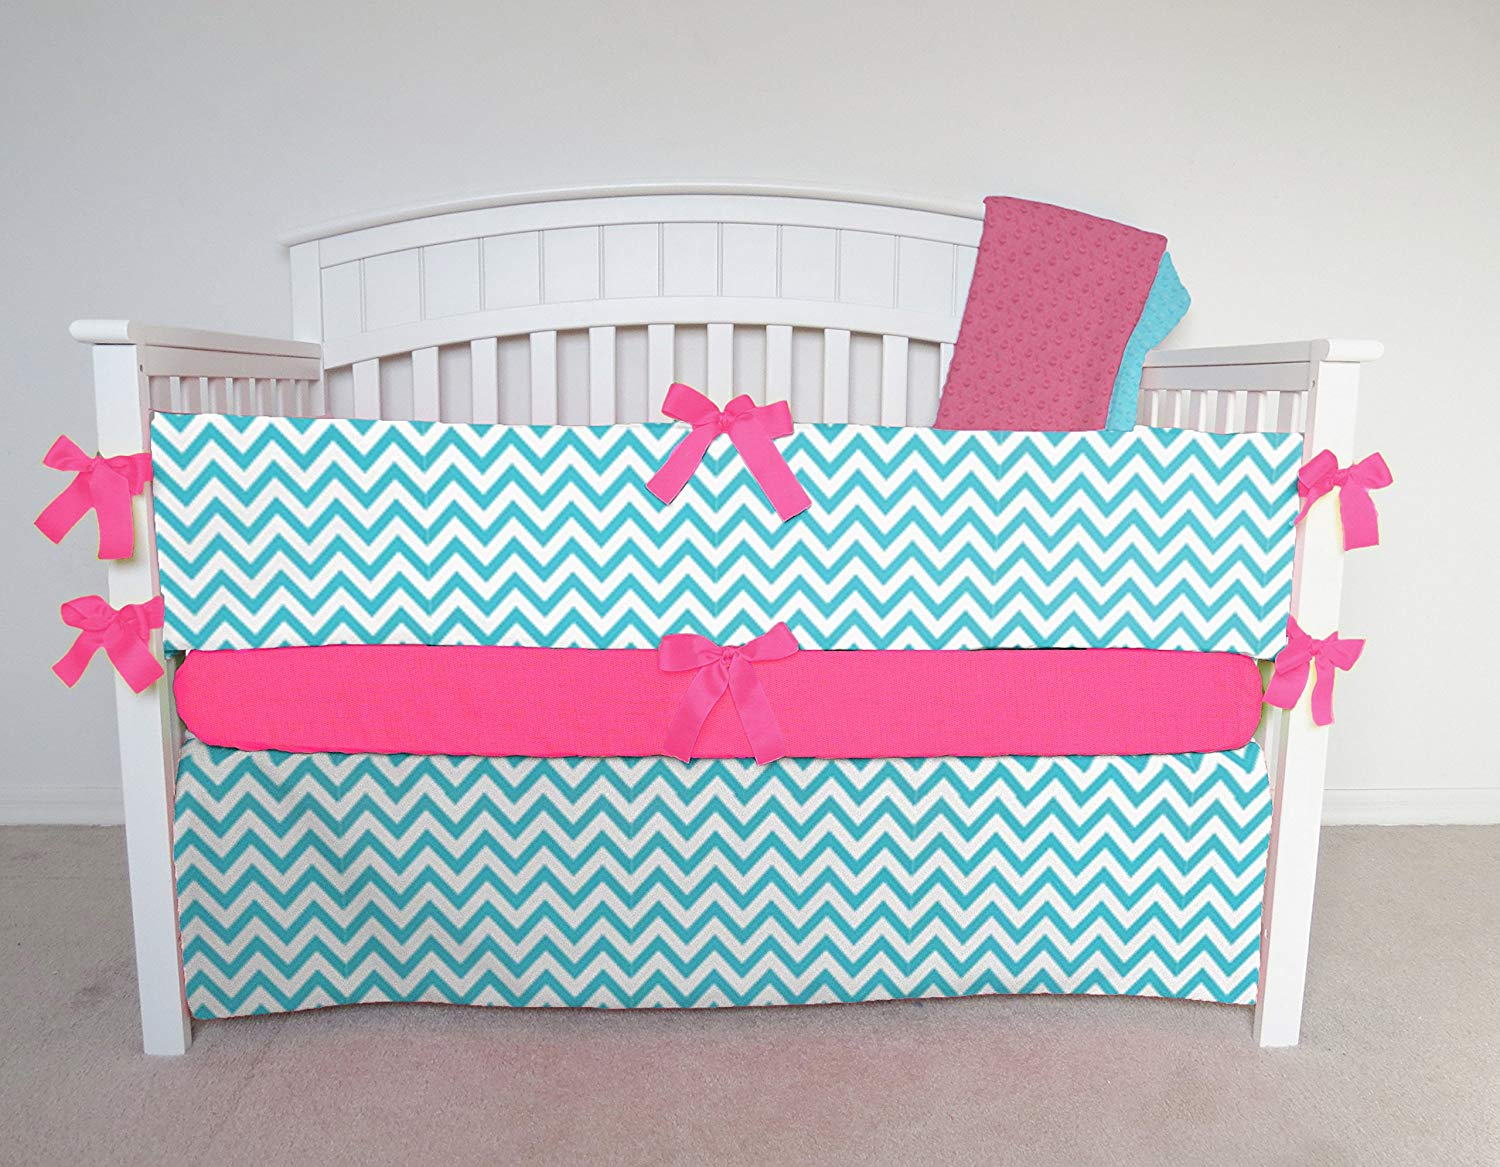 4 Piece Crib Set - aqua chevron crib bedding, aqua chevron, aqua zig zag, blue chevron crib bedding, blue chevron, blue zig zag